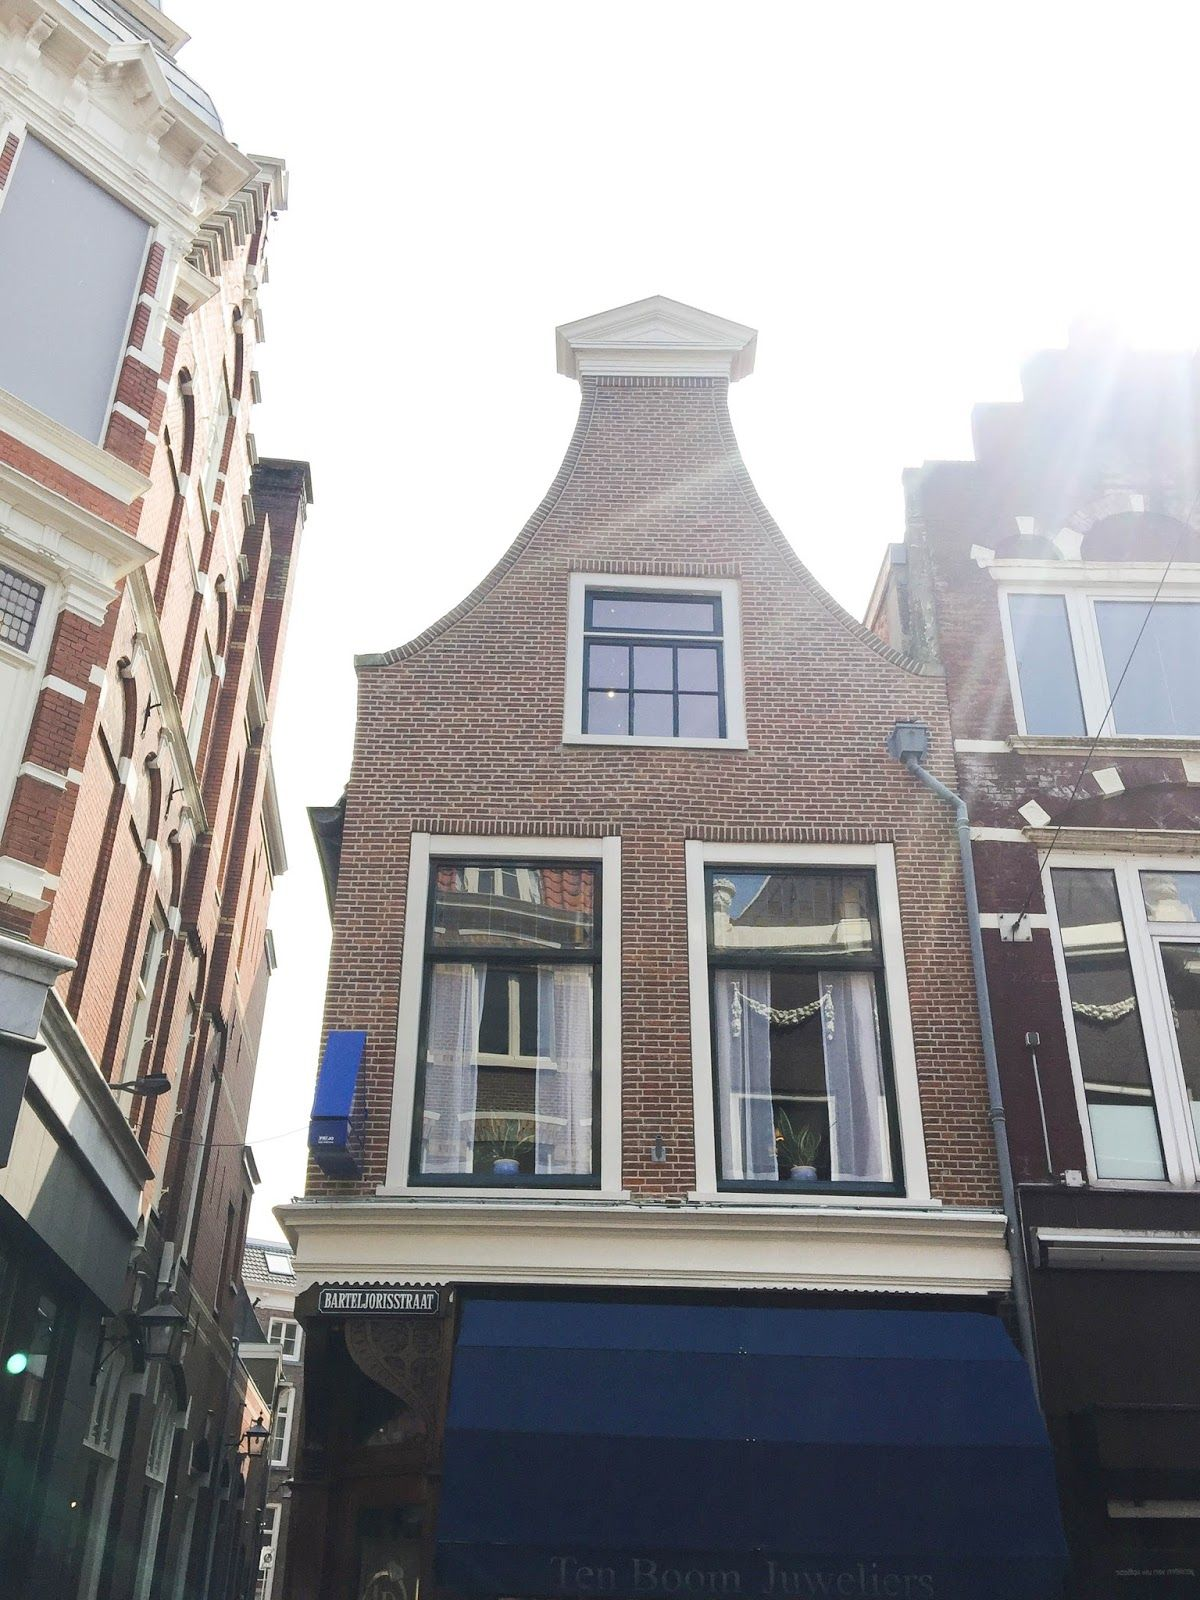 The Hiding Place Home Of Corrie Ten Boom In Haarlem